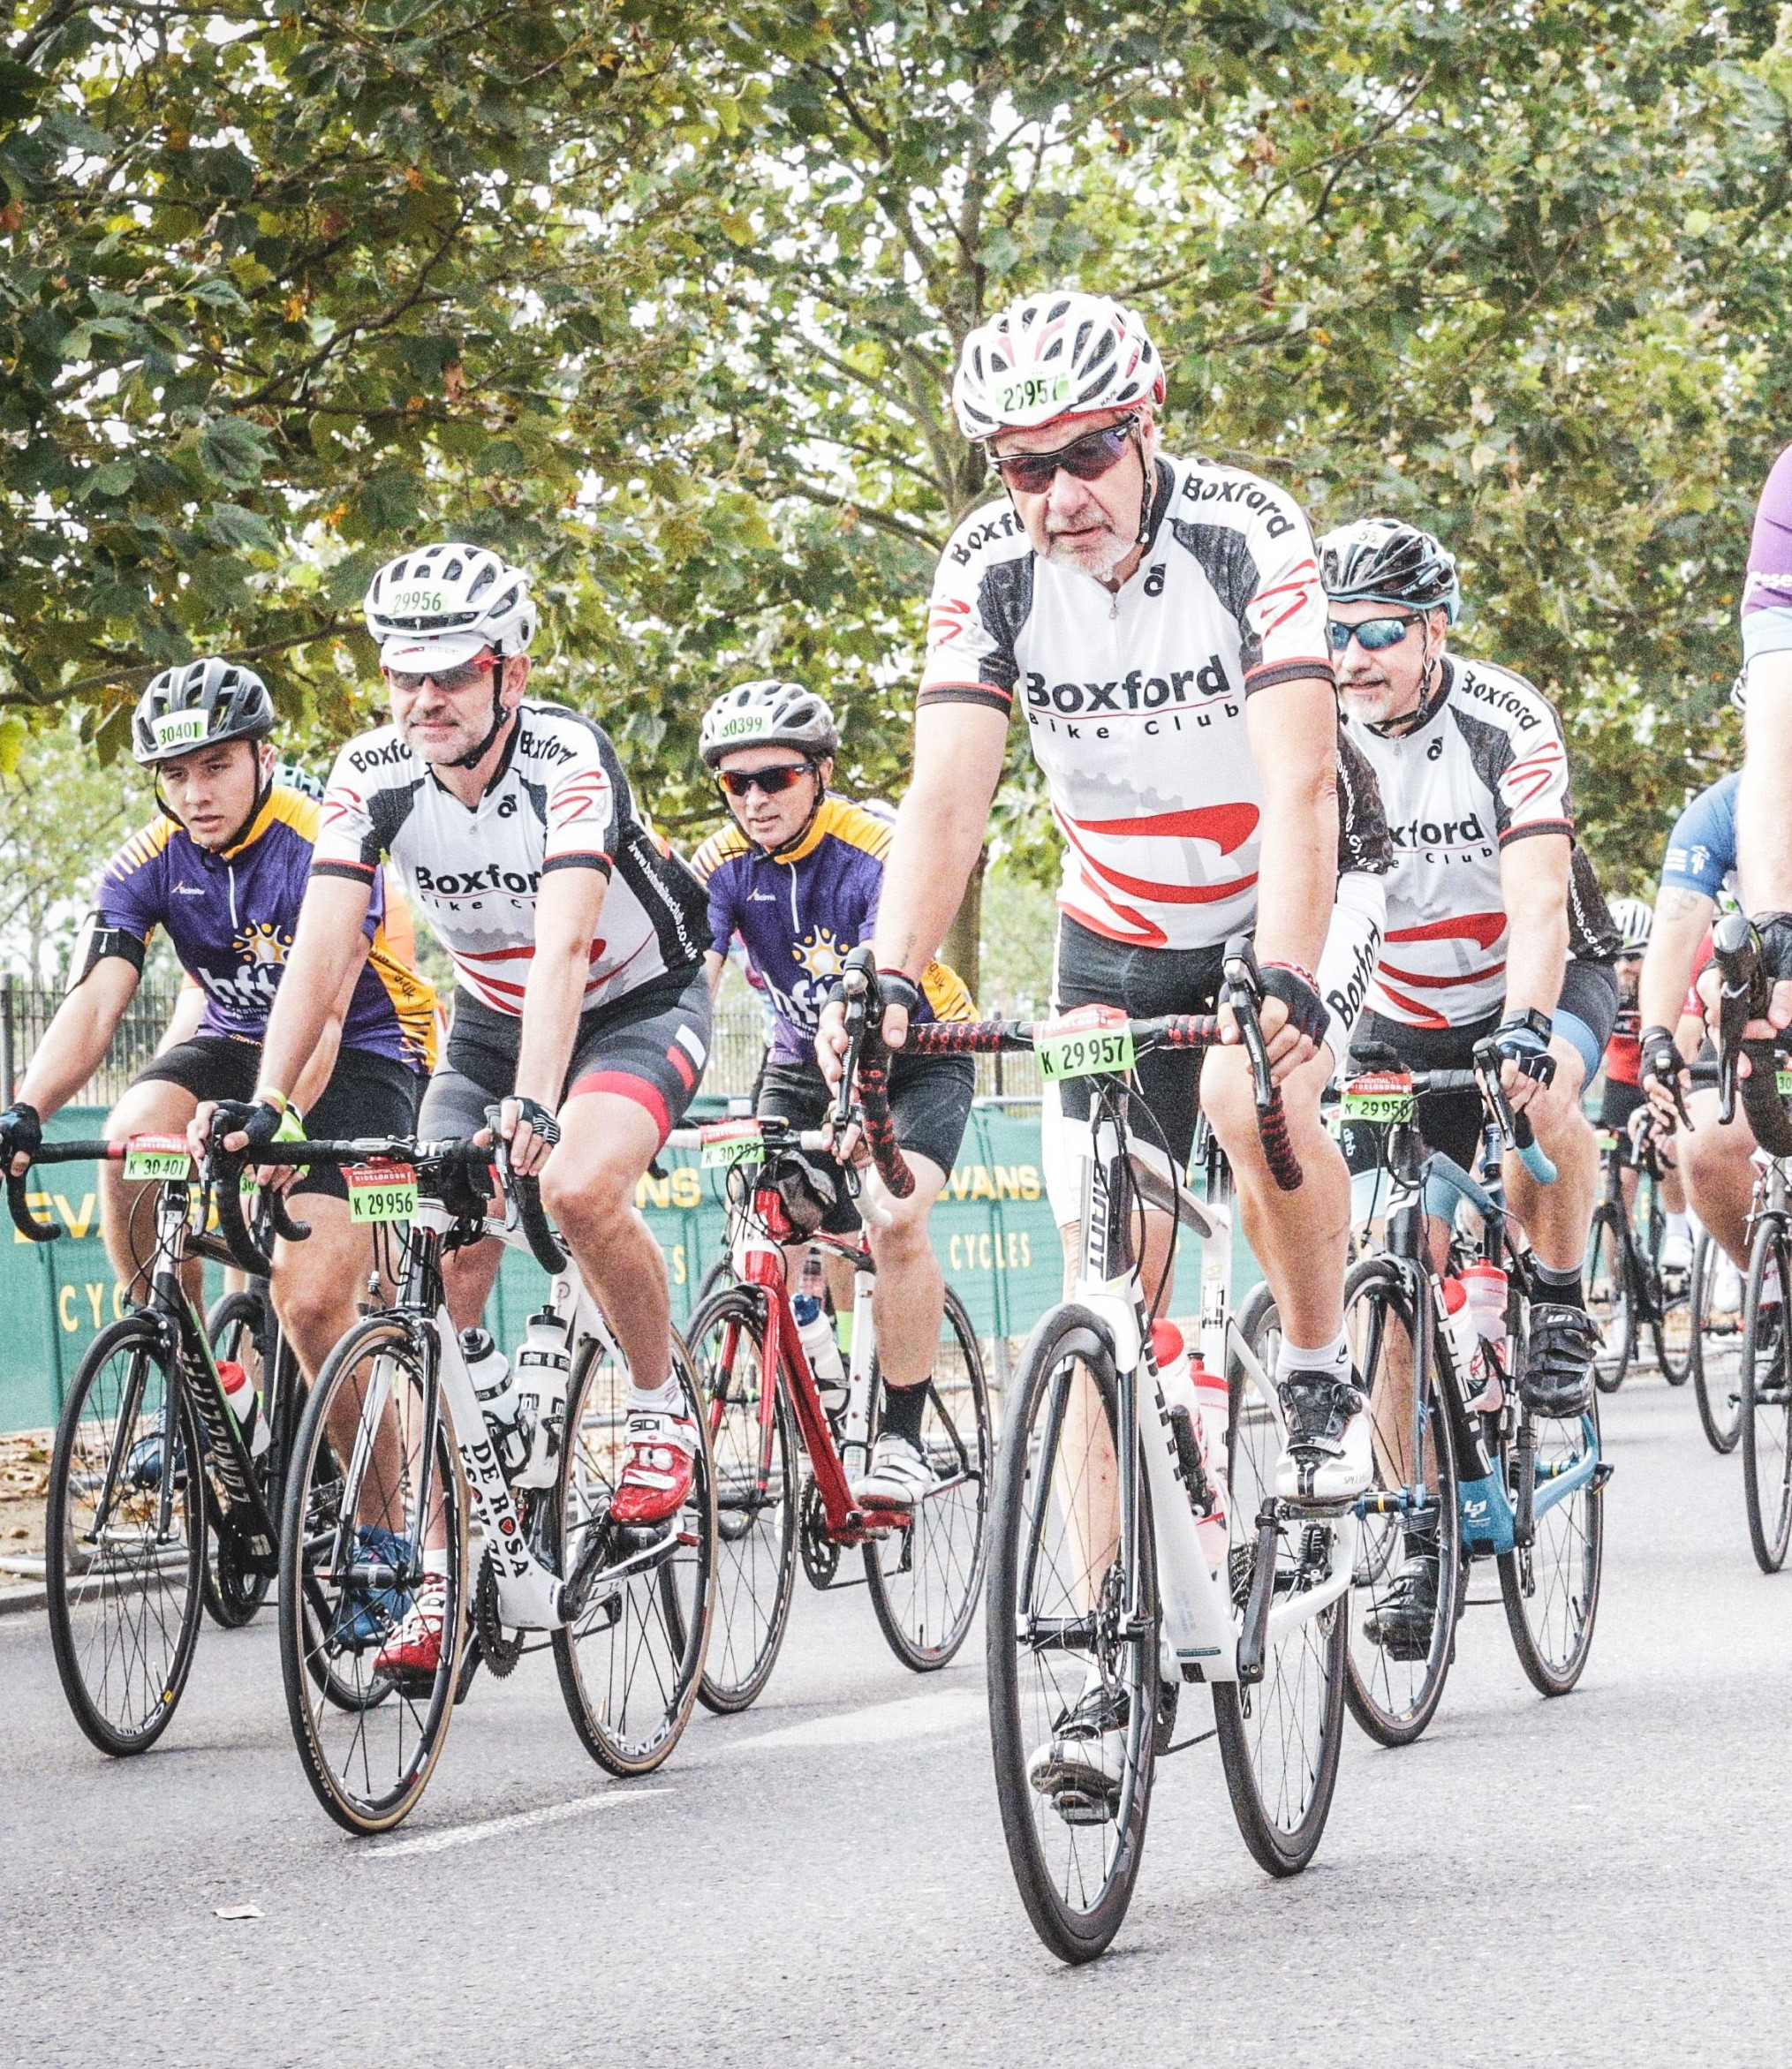 Ride London 2019 - Dave Humby, Mark Bramhall an dian Simpson at start.JPG